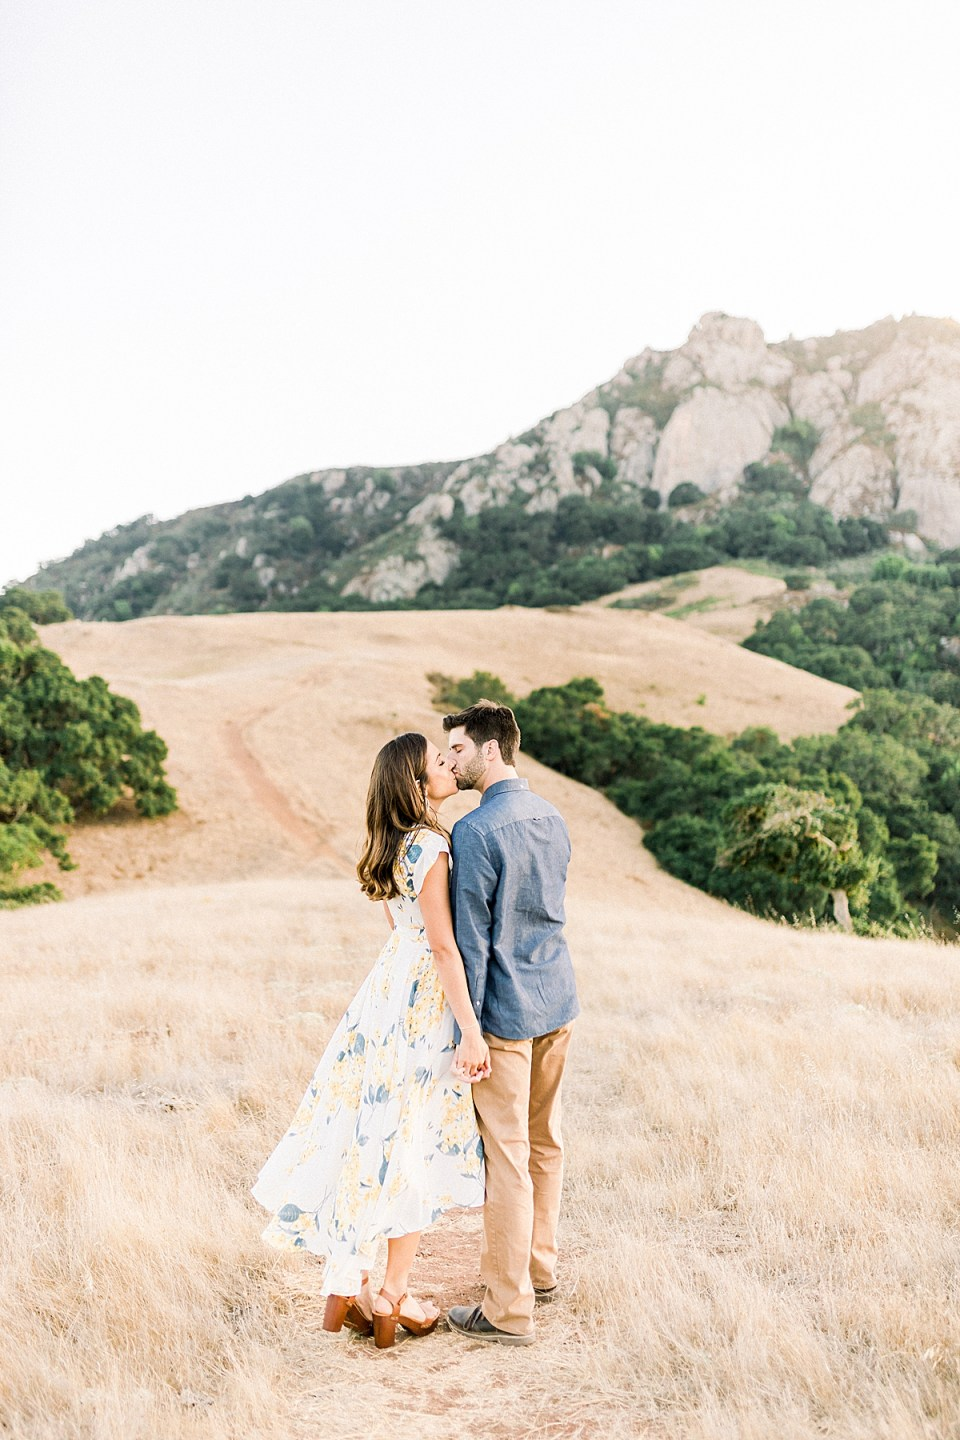 The couple stopping to share a kiss on the path while holding hands and Bishop's Peak is in the background.